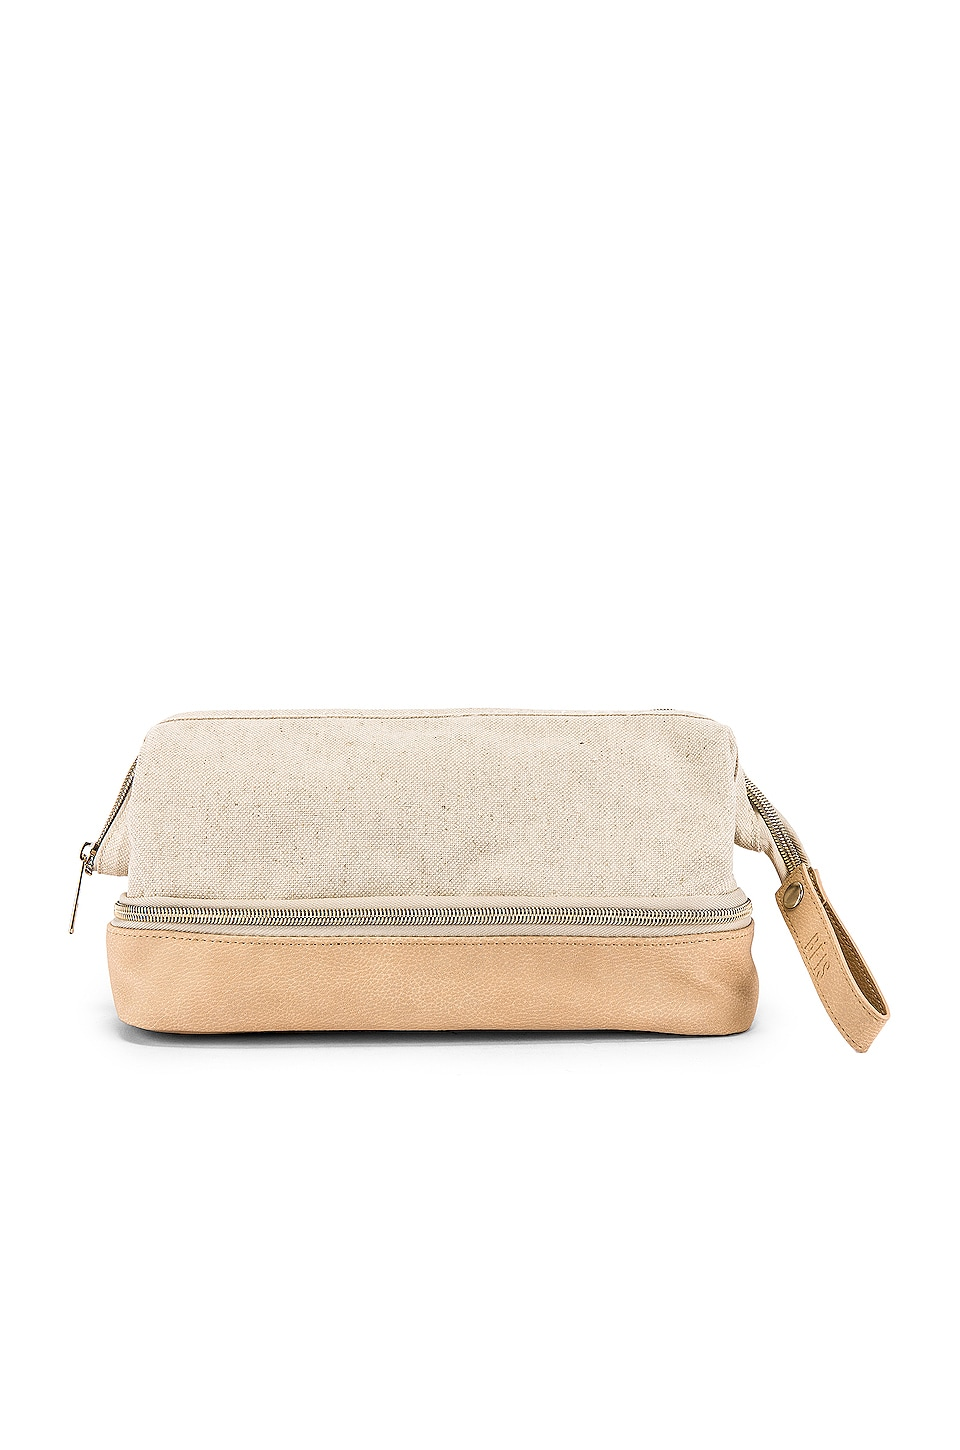 BEIS The Dopp Kit in Beige